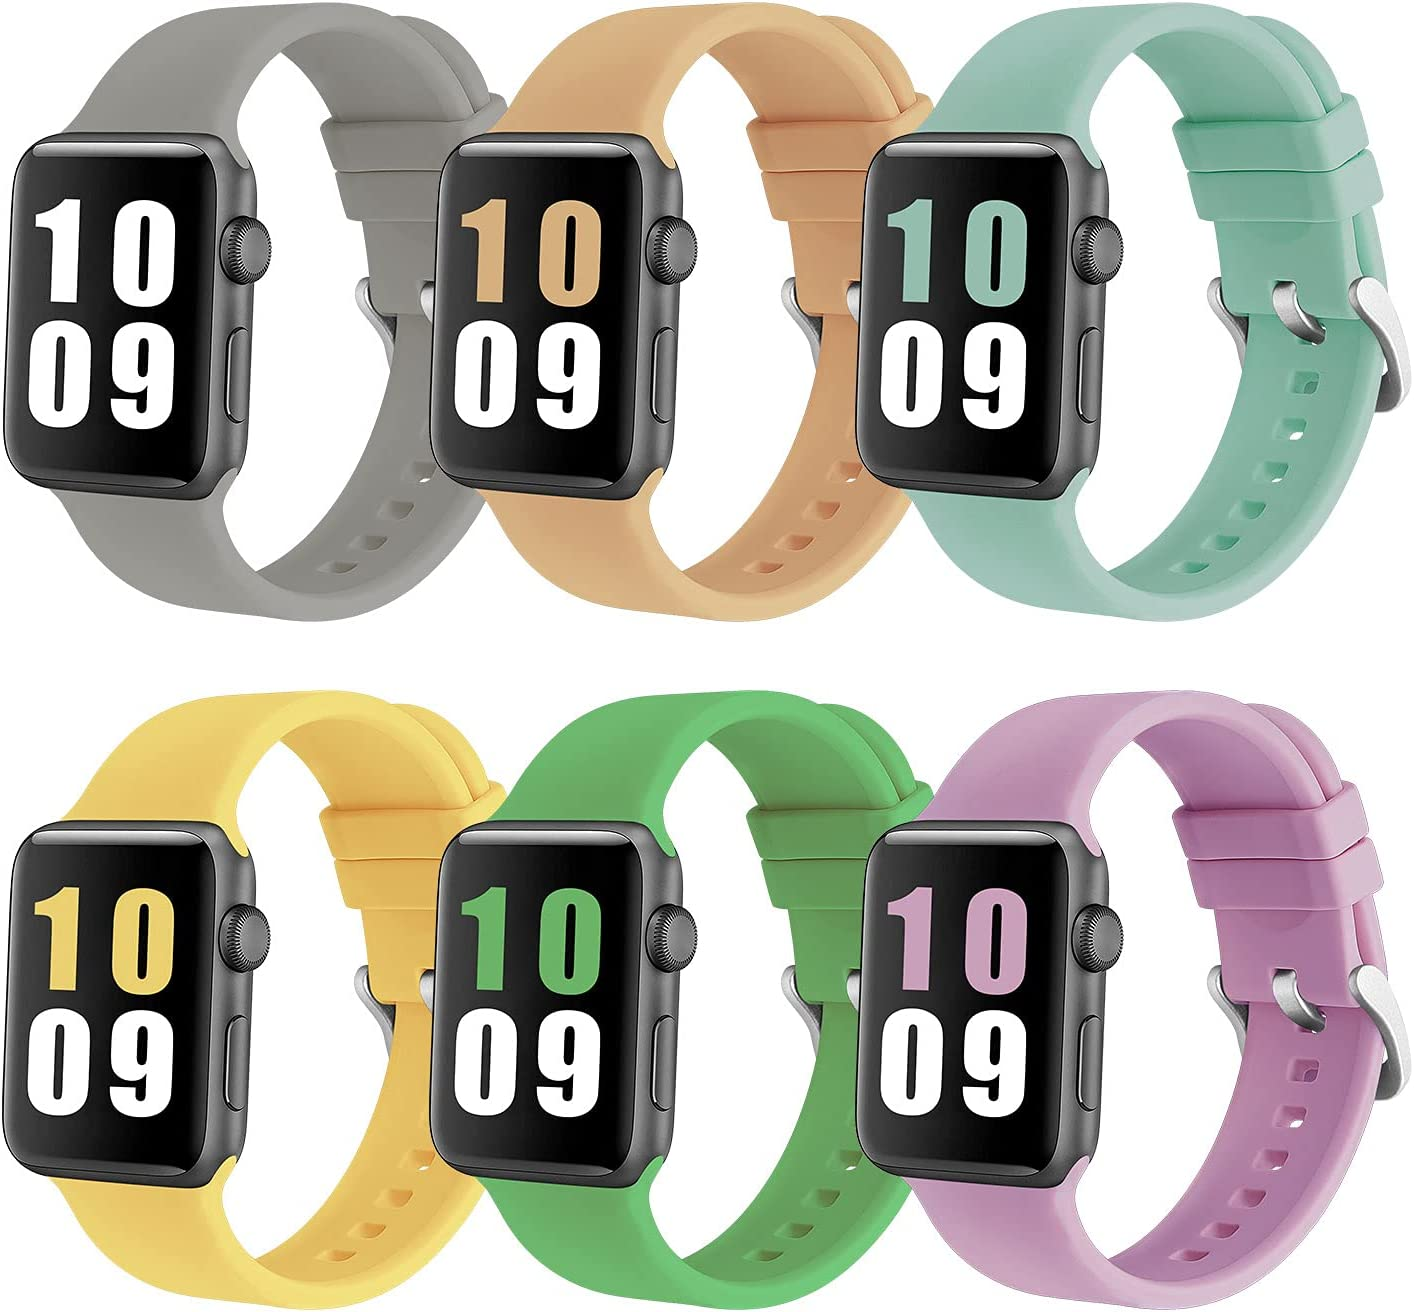 PROSRAT 6-Pack Sport Straps Compatible With Apple Watch Bands 38mm 40mm 42mm 44mm,Soft Silicone Replacement Bands for iWatch Series 6/SE/5/4/3/2/1 for Women Men (Gray/Walnut/Turquoise/Mint Green/Yellow/Lavender, 42mm/44mm)